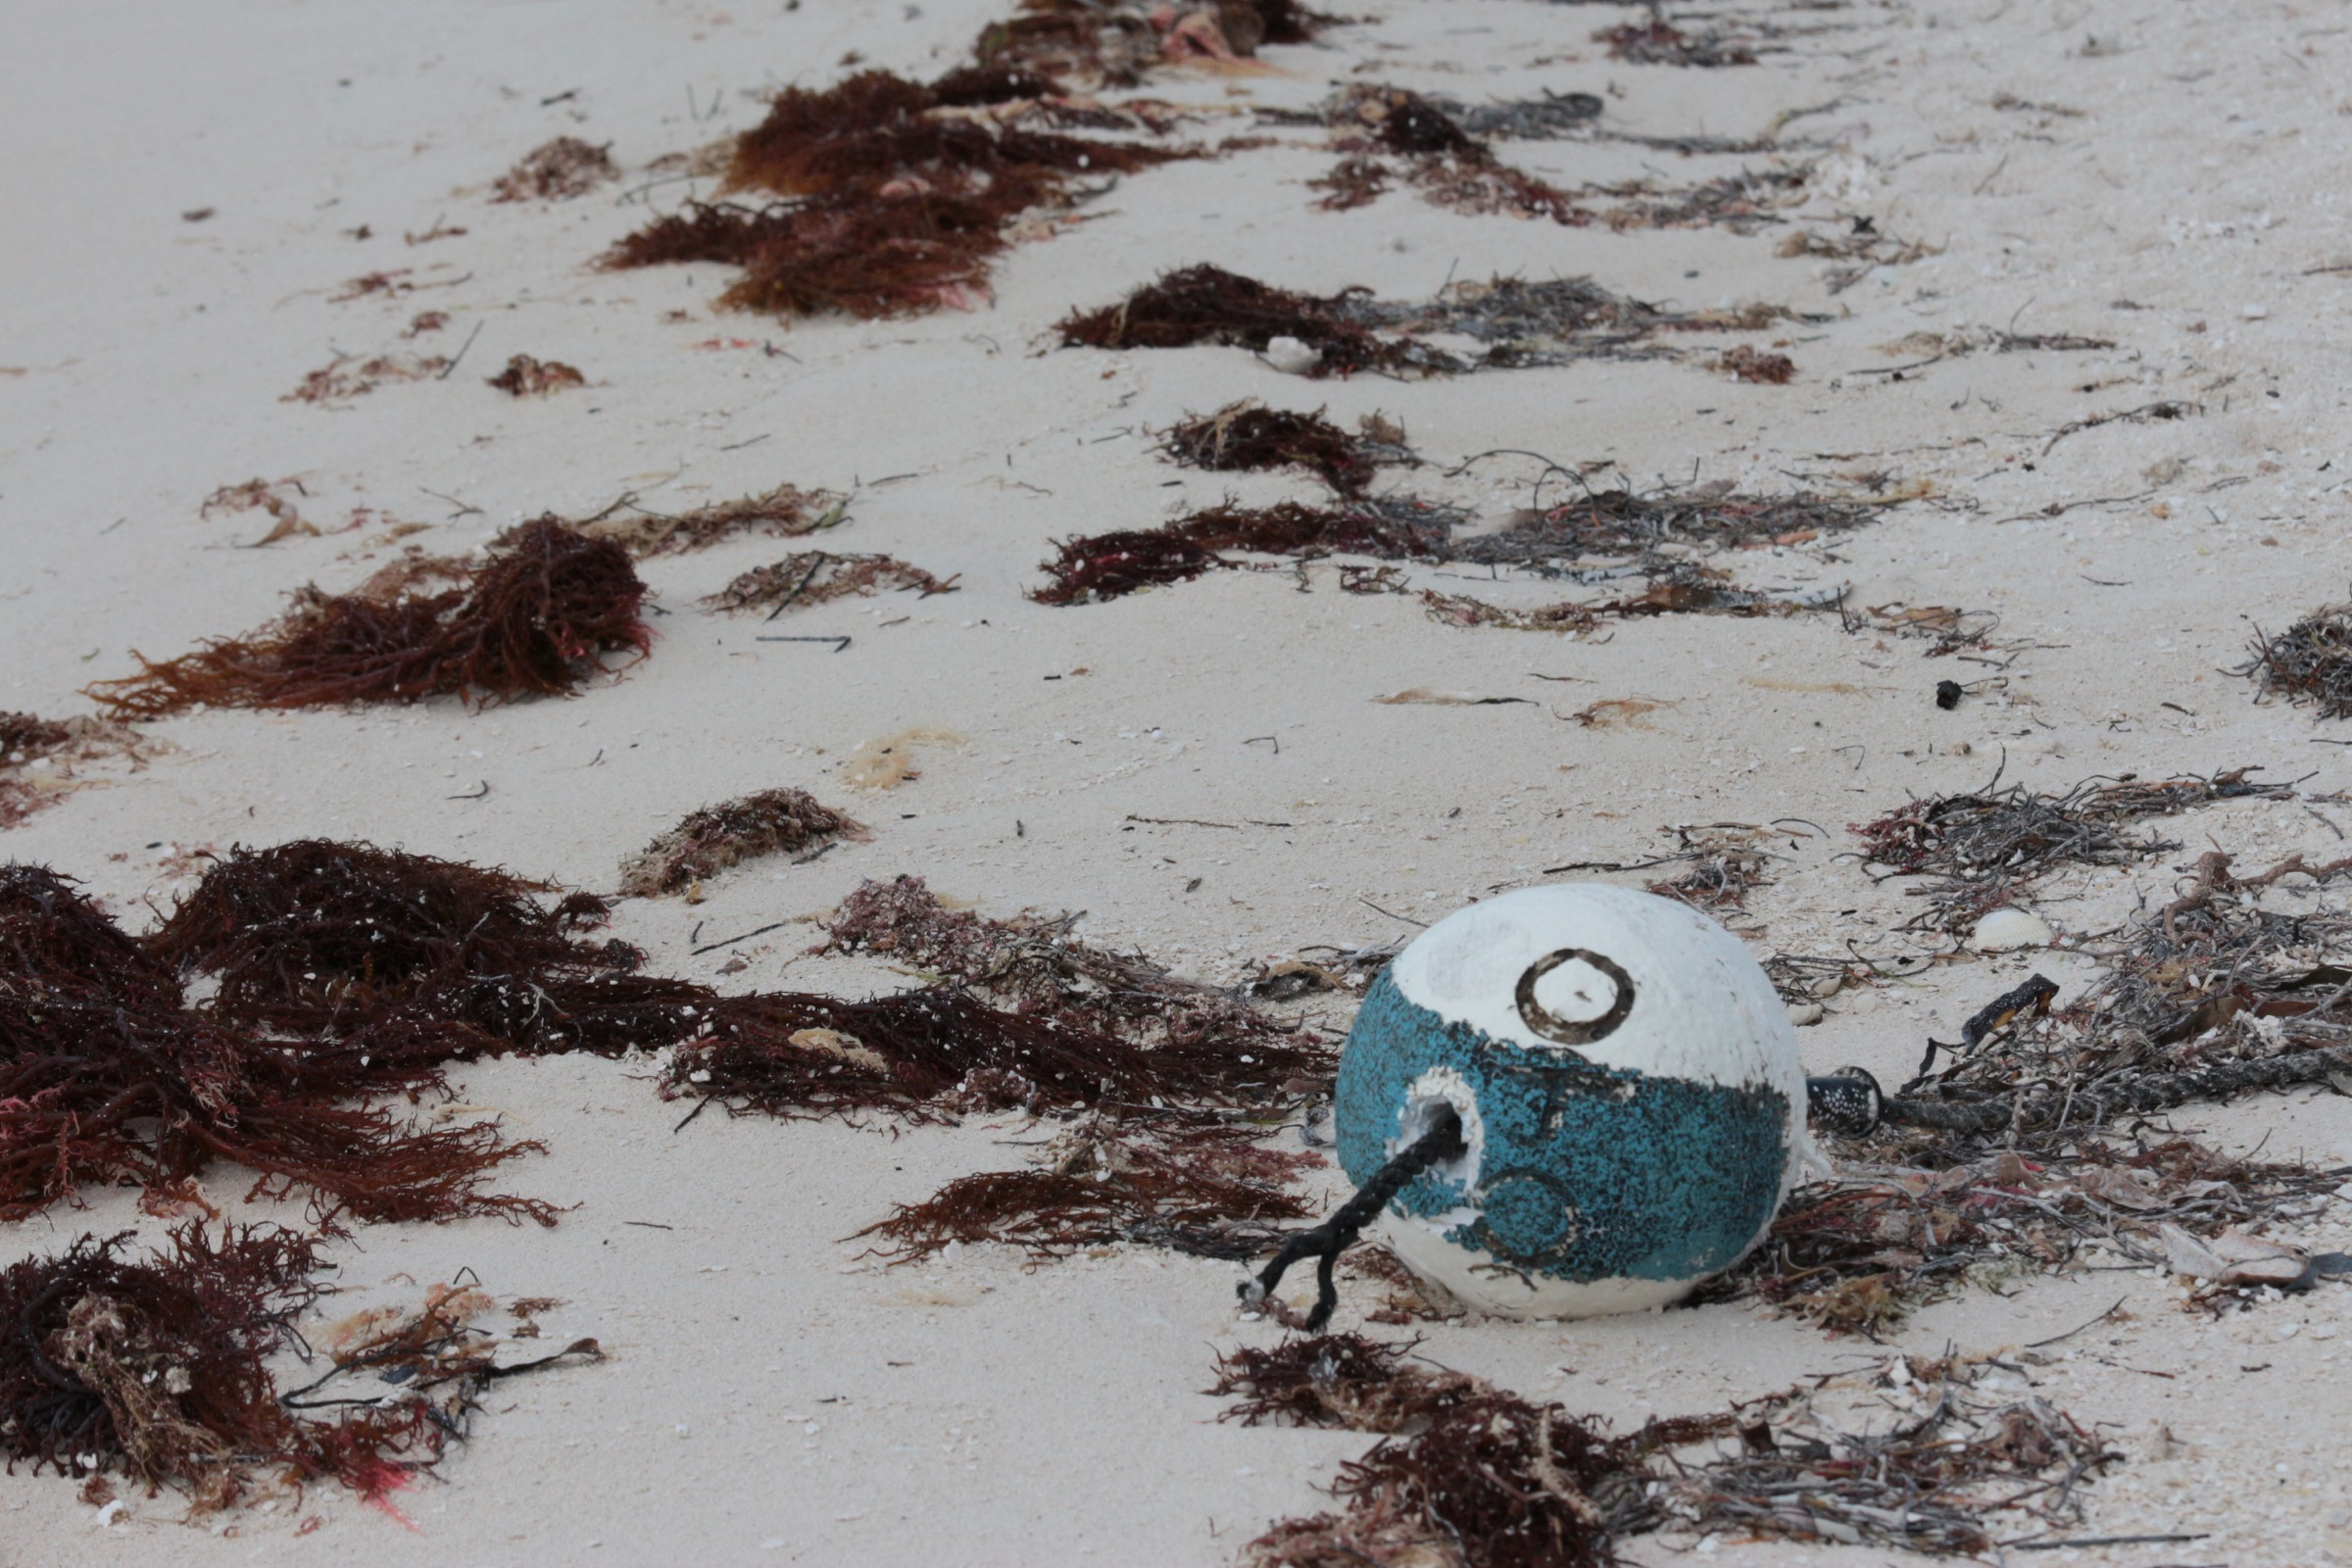 A fishing buoy on a beach in the Florida Keys is a subtle reminder of the devastation Hurricane Irma left in its wake. Photograph by Hannah Hoag